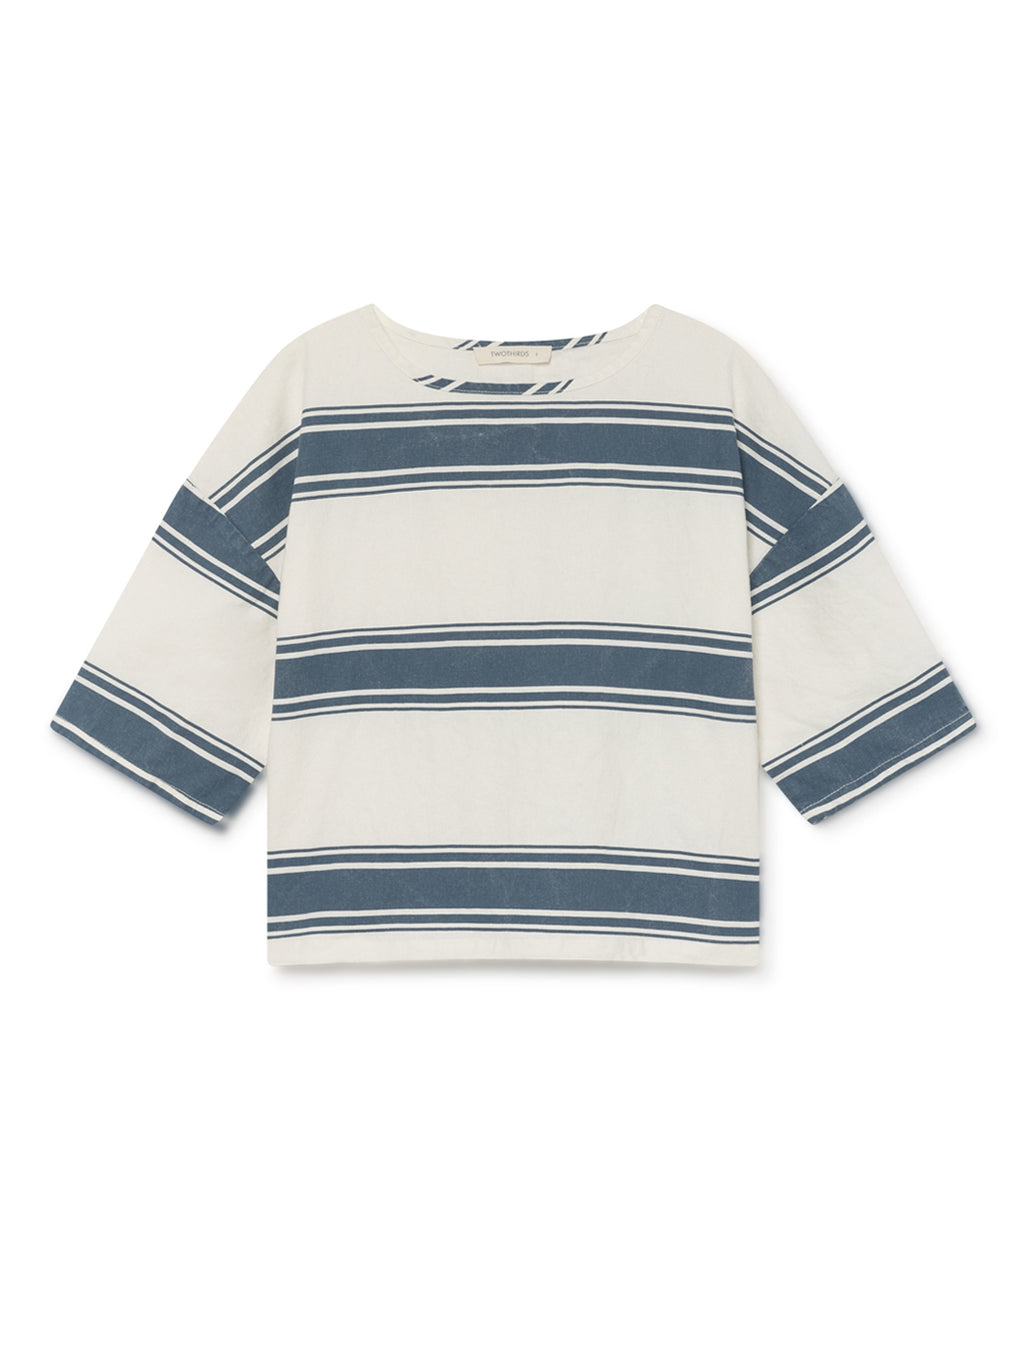 TWOTHIRDS Womens Top: Tilou - Blue Stripes front